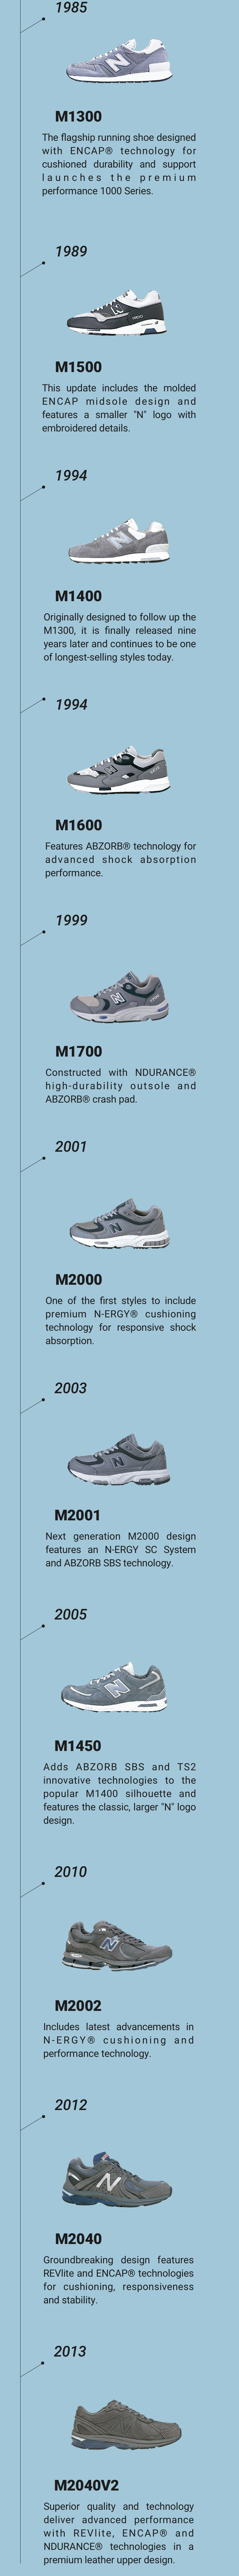 METCHA   New Balance 2000 is the 00s